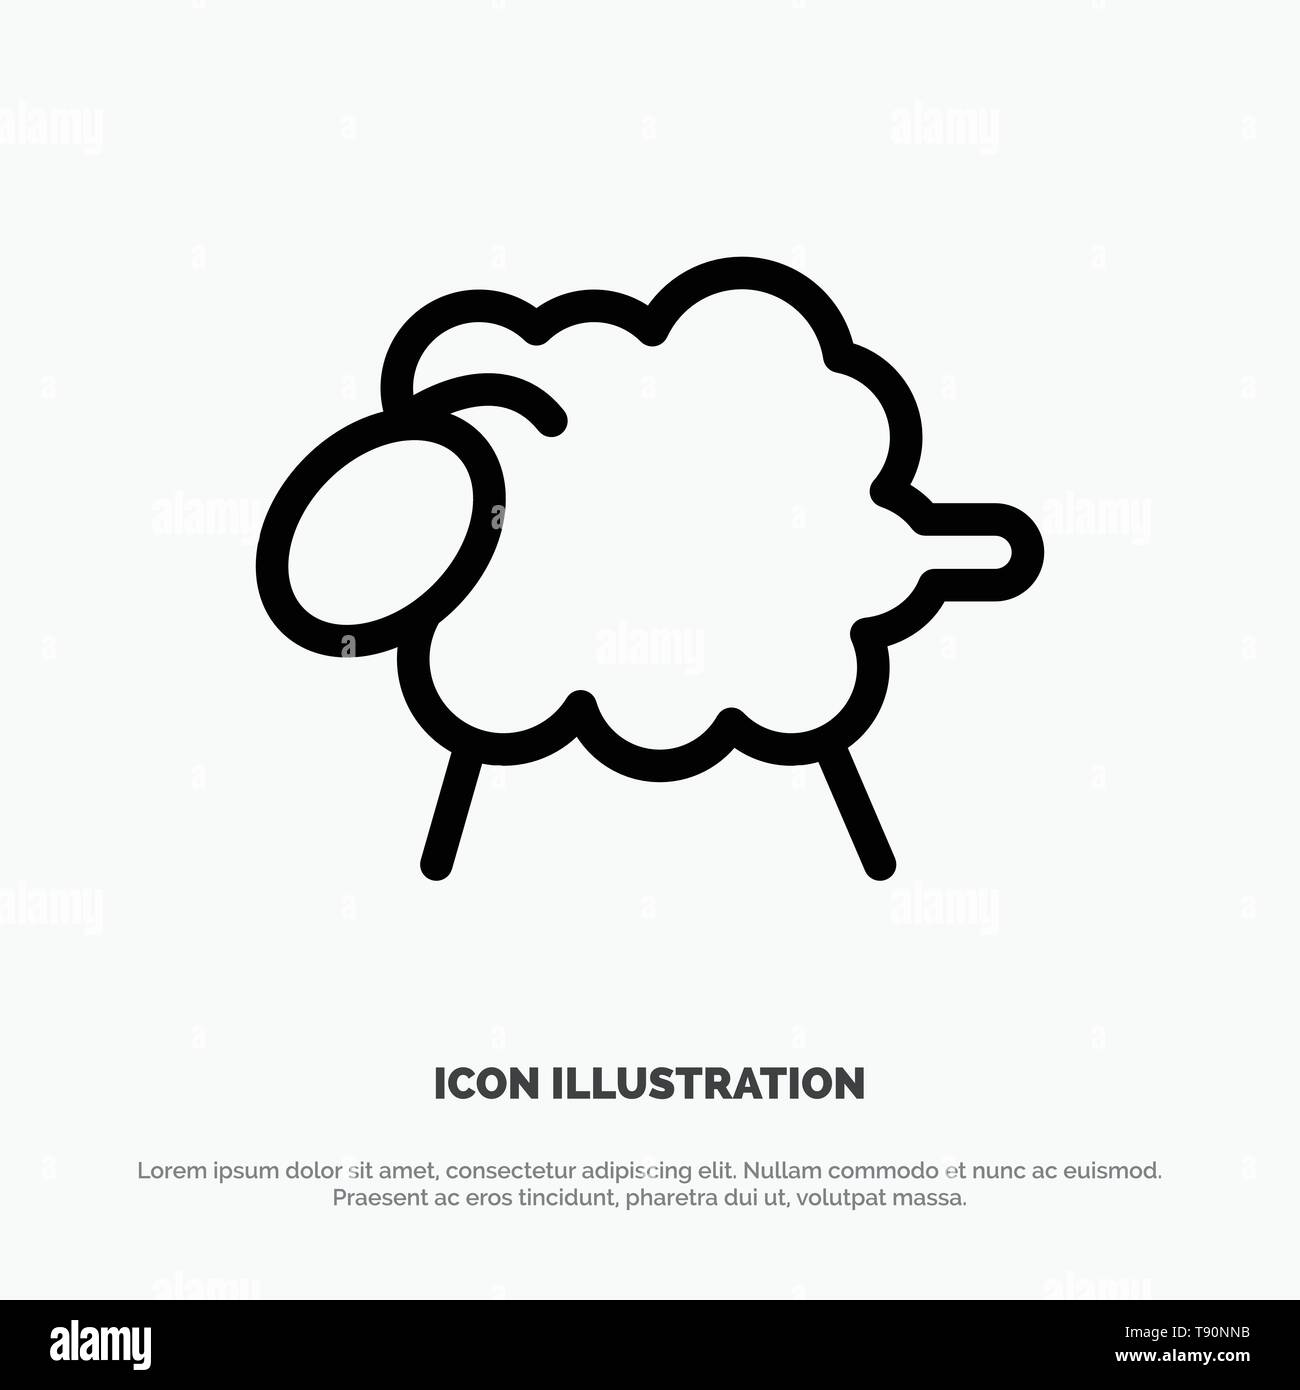 Lamb, Sheep, Wool, Easter Line Icon Vector Stock Vector